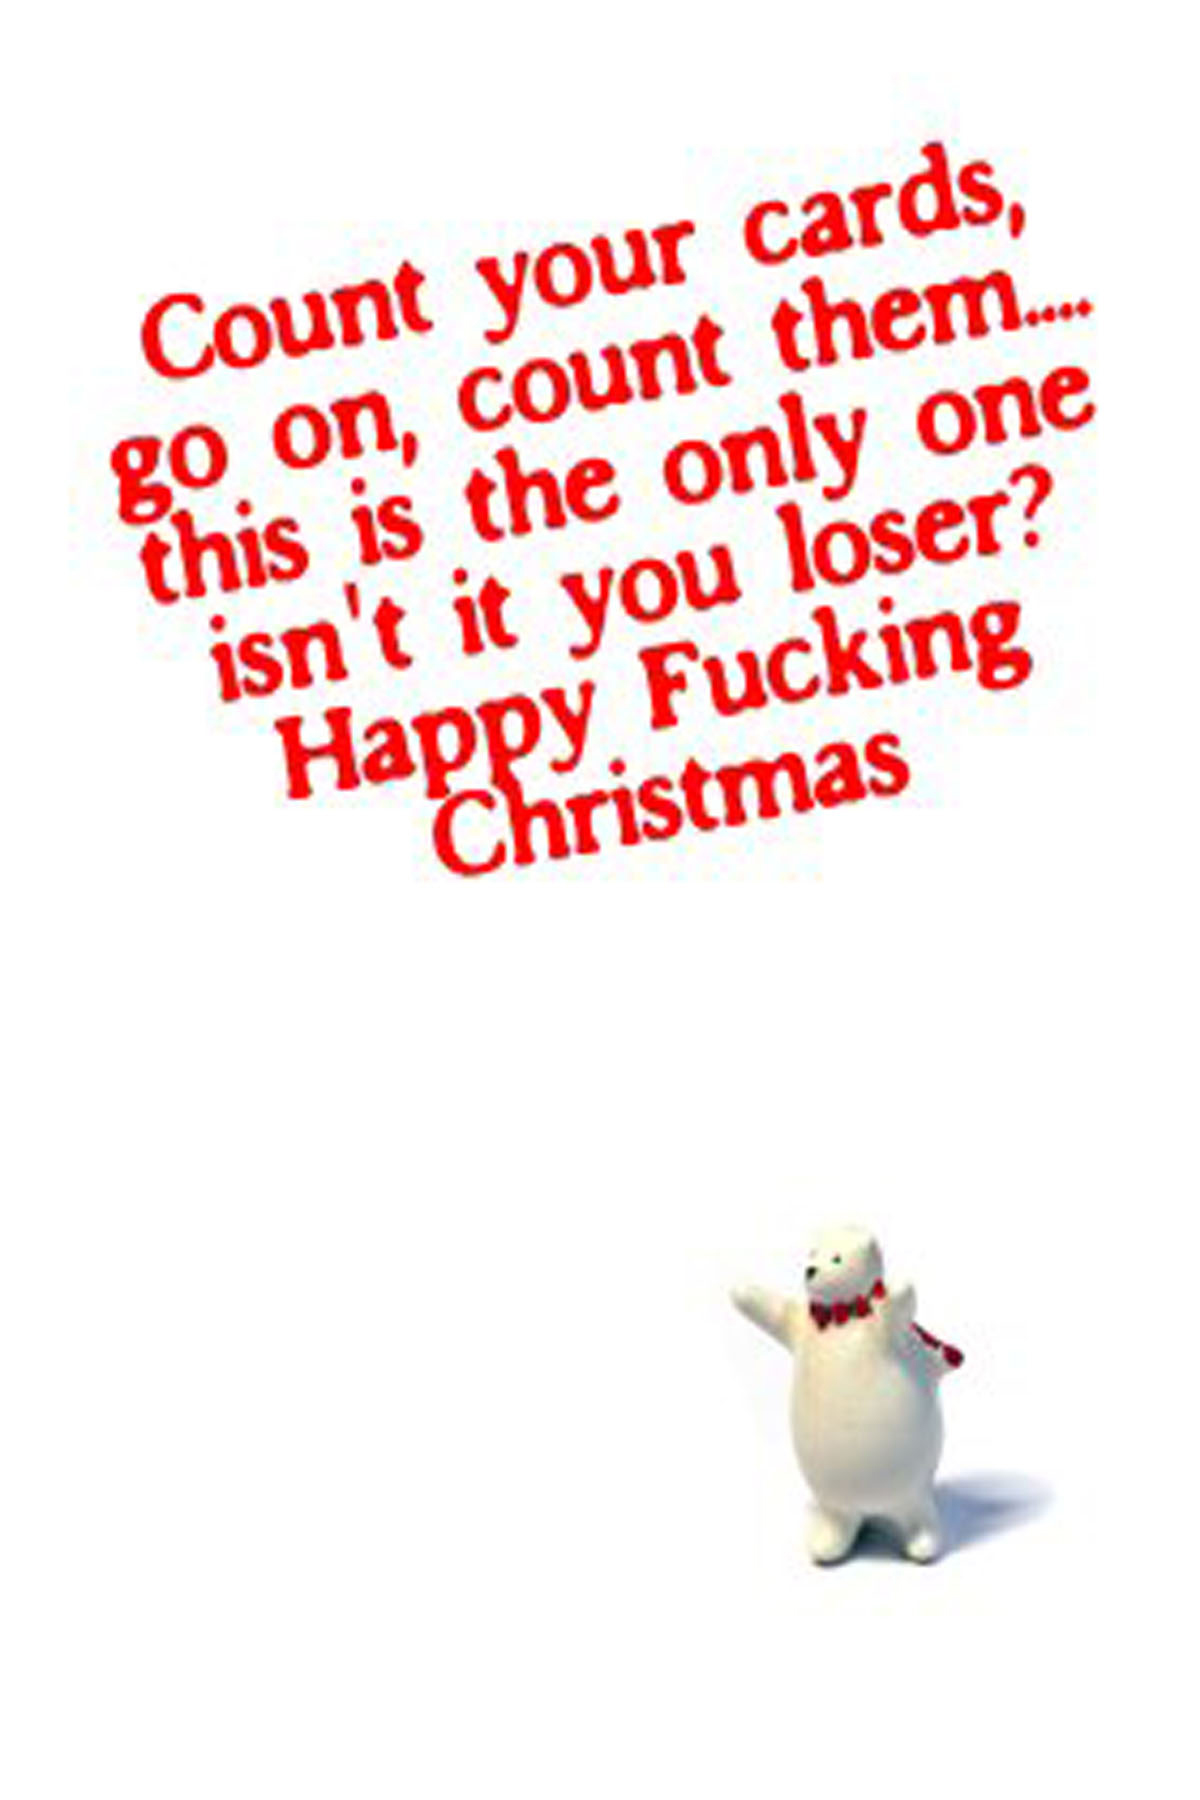 Get Revenge On Your Ex by sending this Christmas card